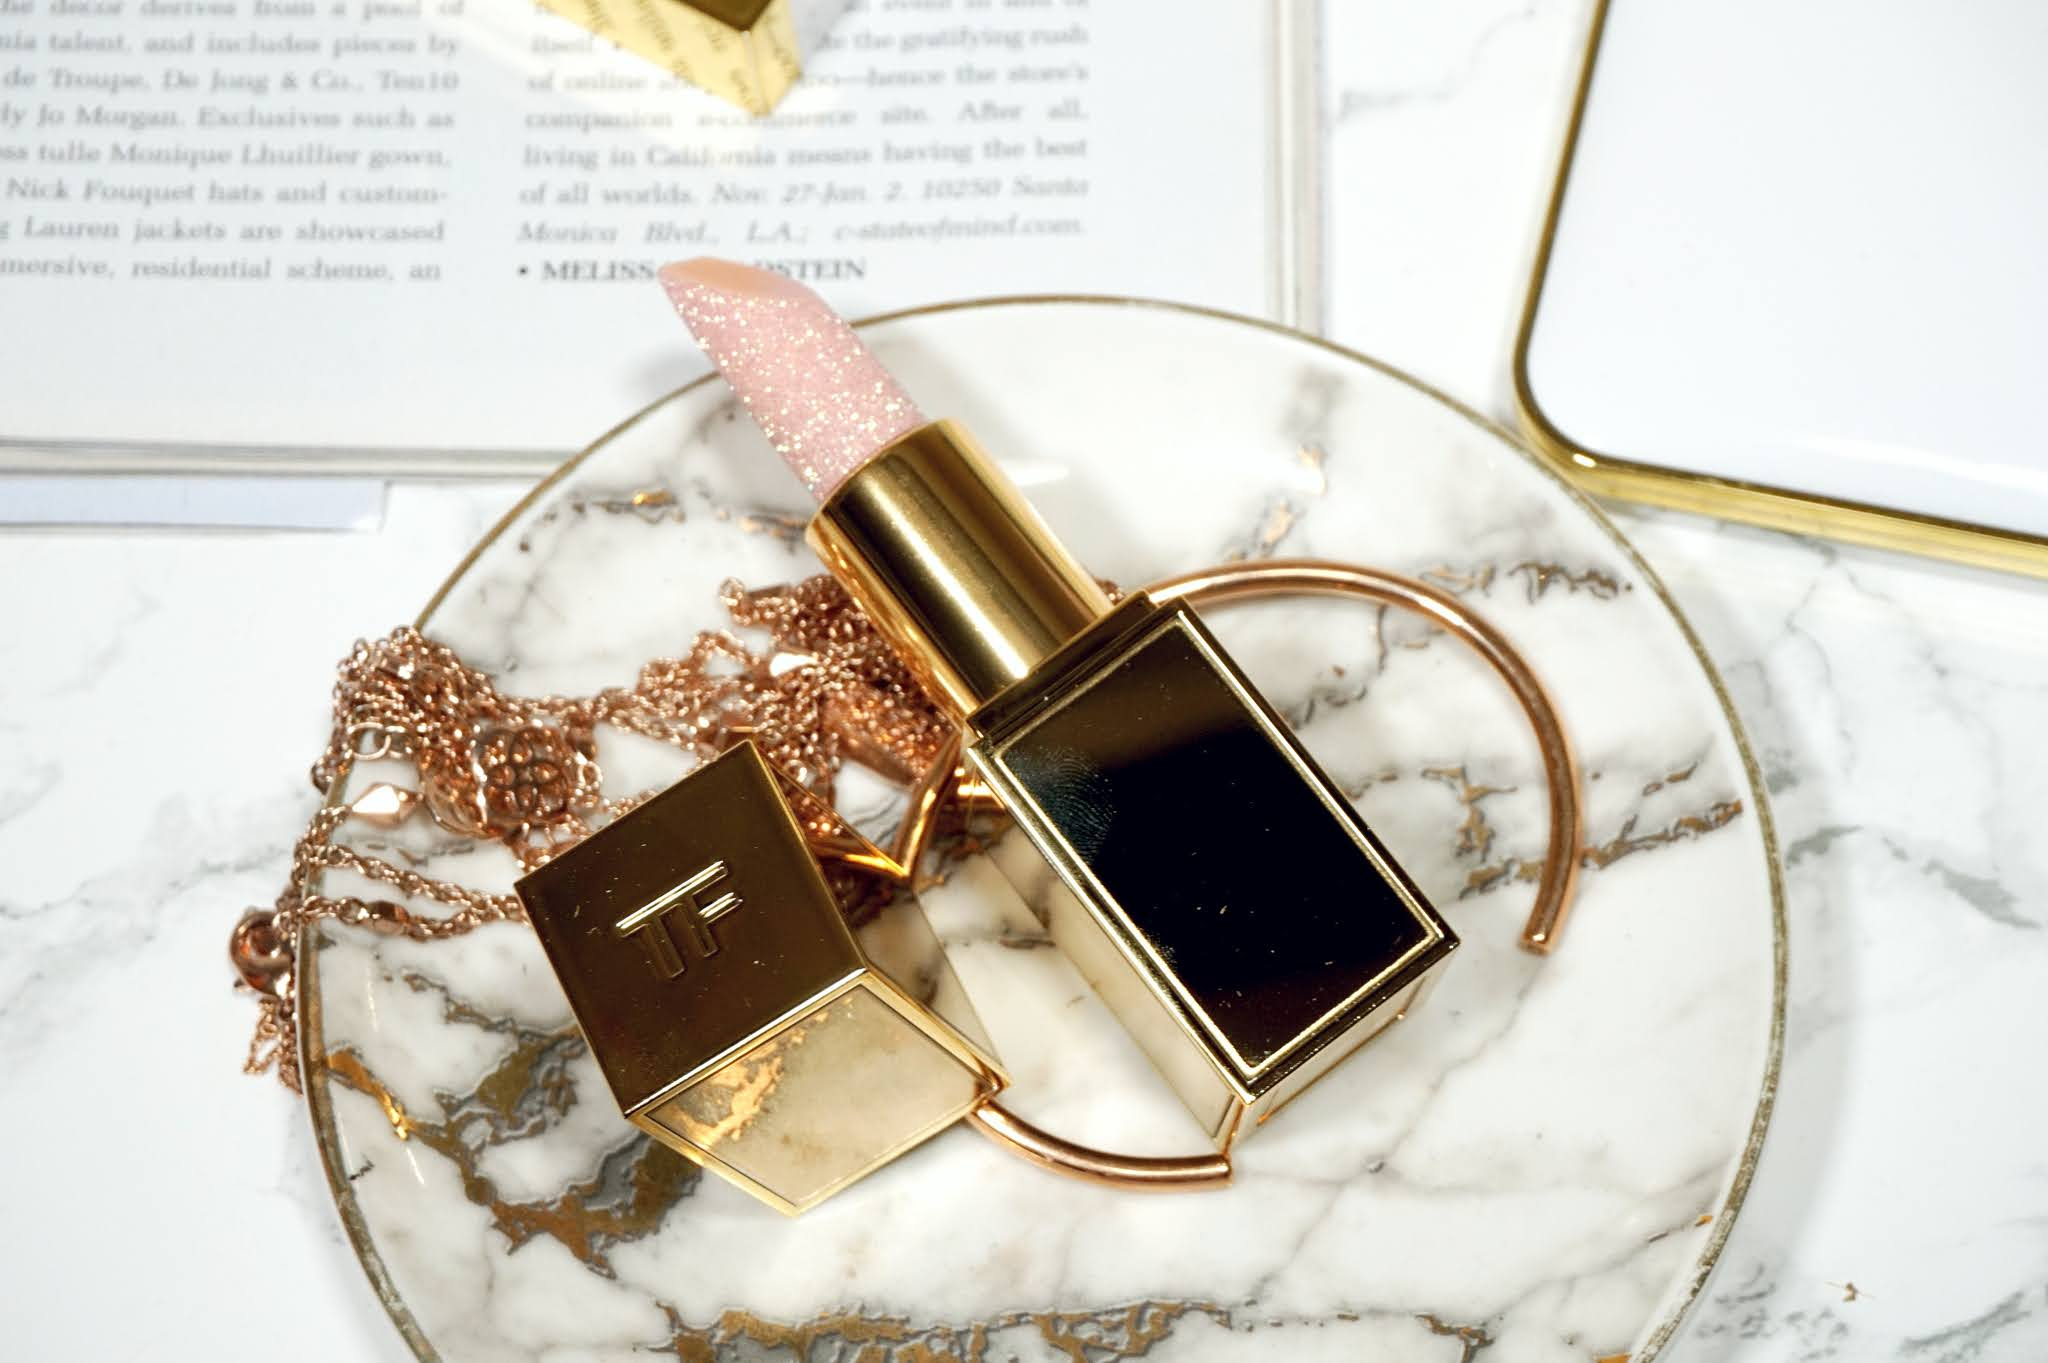 Tom Ford Soleil Neige Lip Balm Frost Review and Swatches